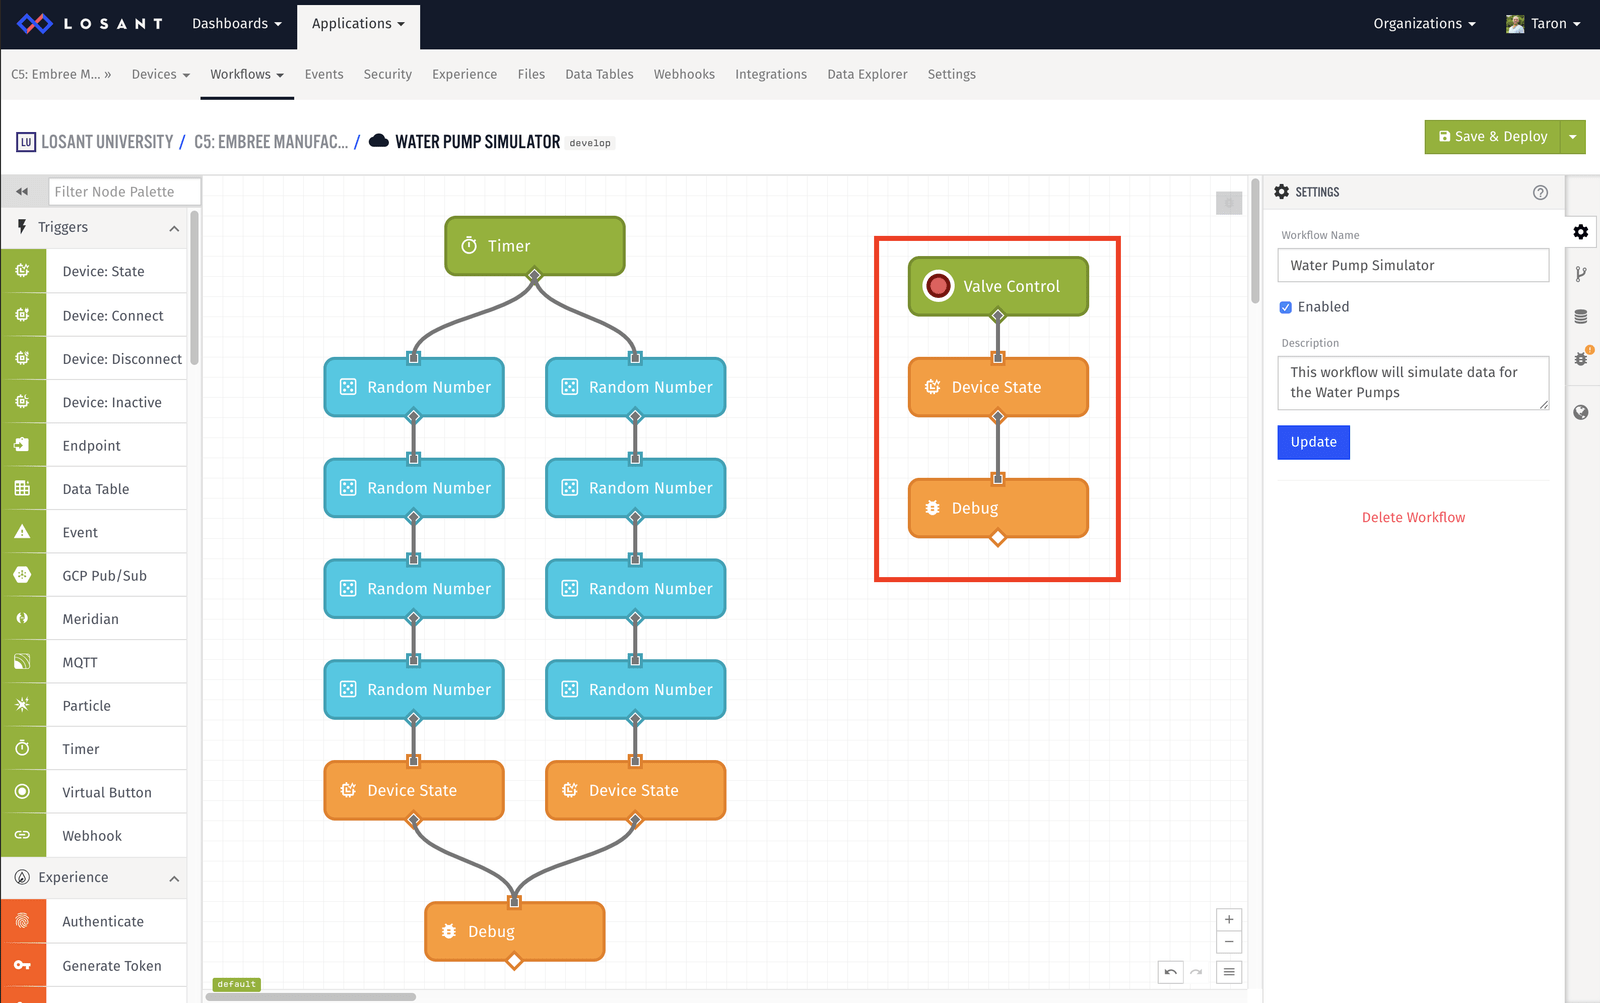 Simulated workflow new path